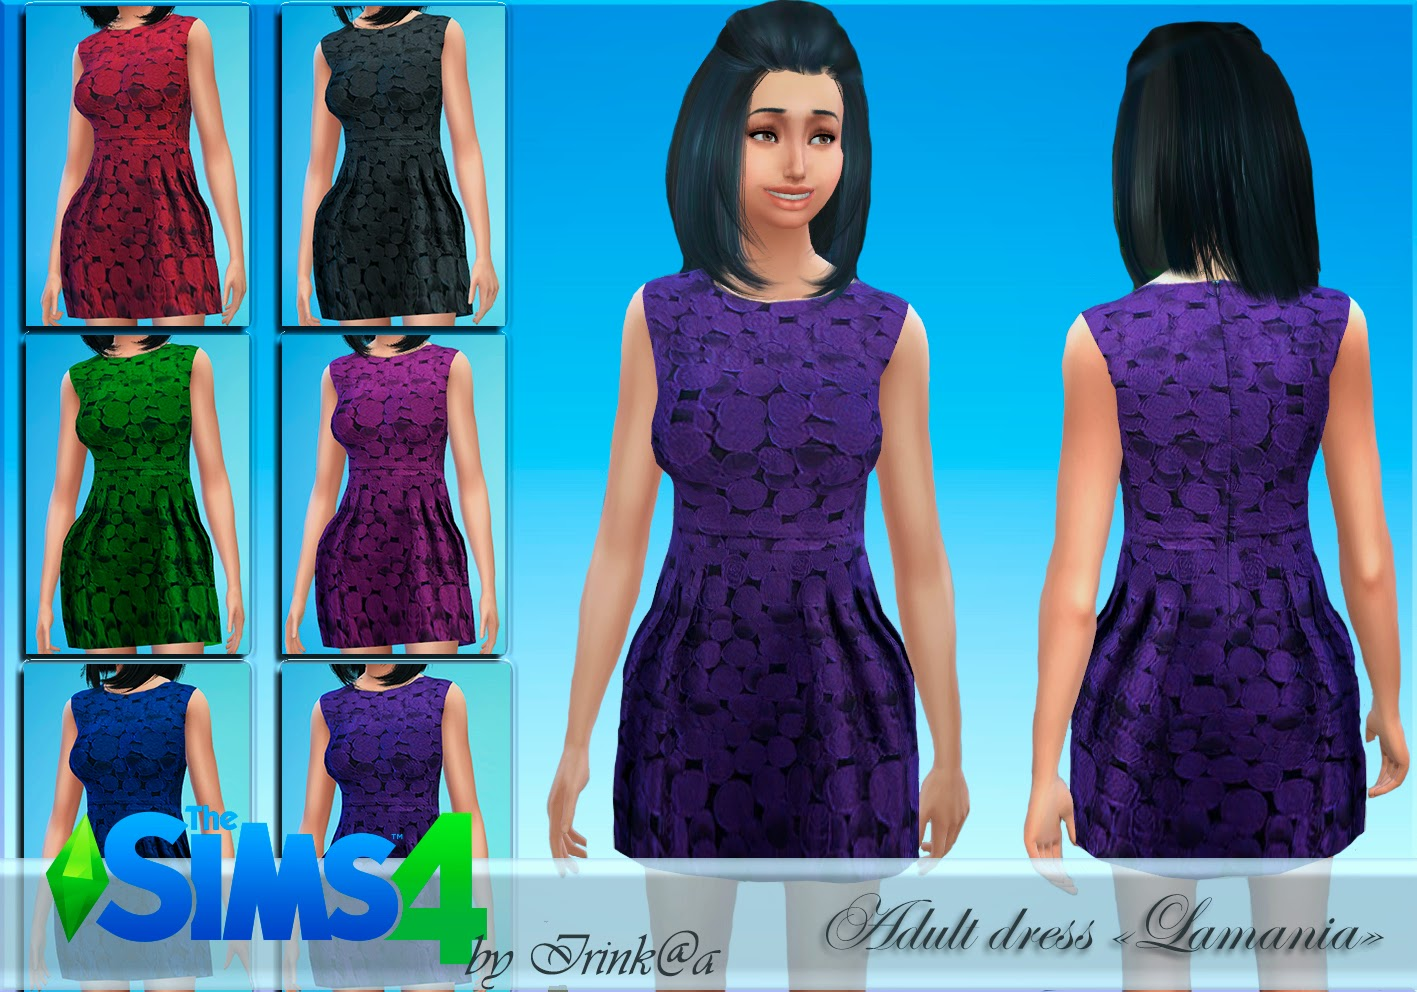 Lamania dress by Irink@a